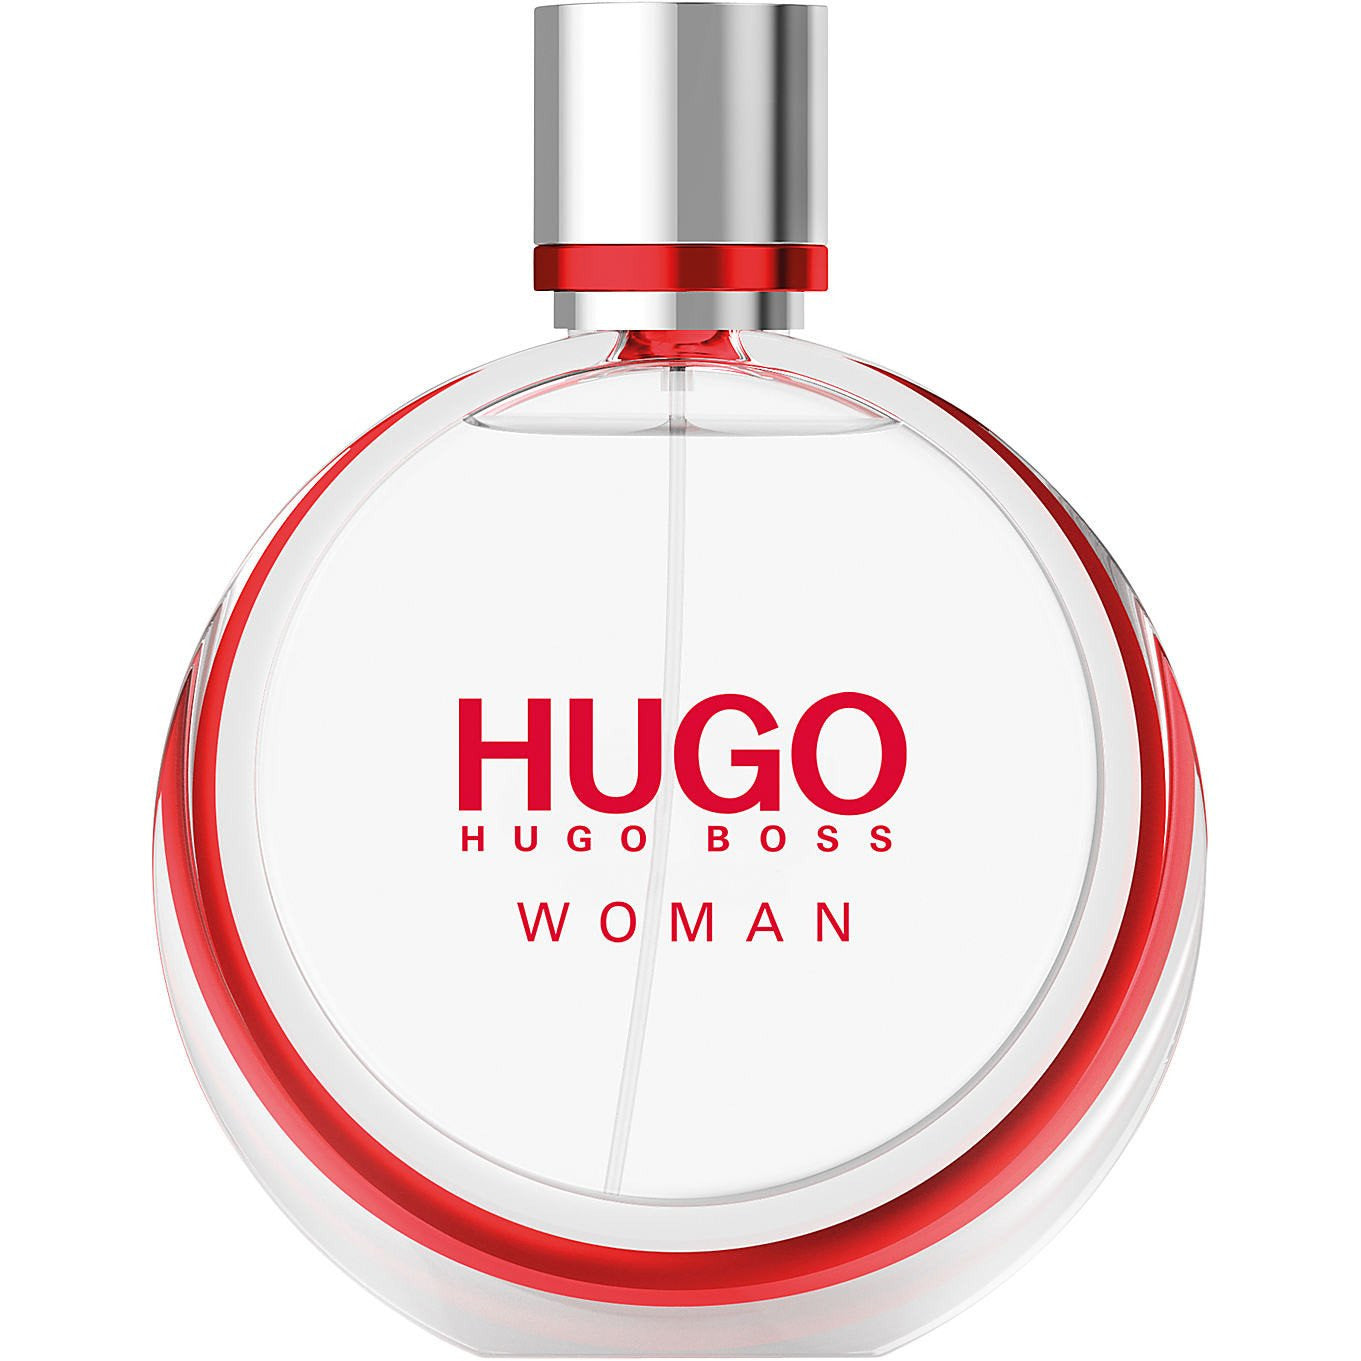 hugo-woman-by-hugo-boss-perfume-2-5-oz-edp-new-tester